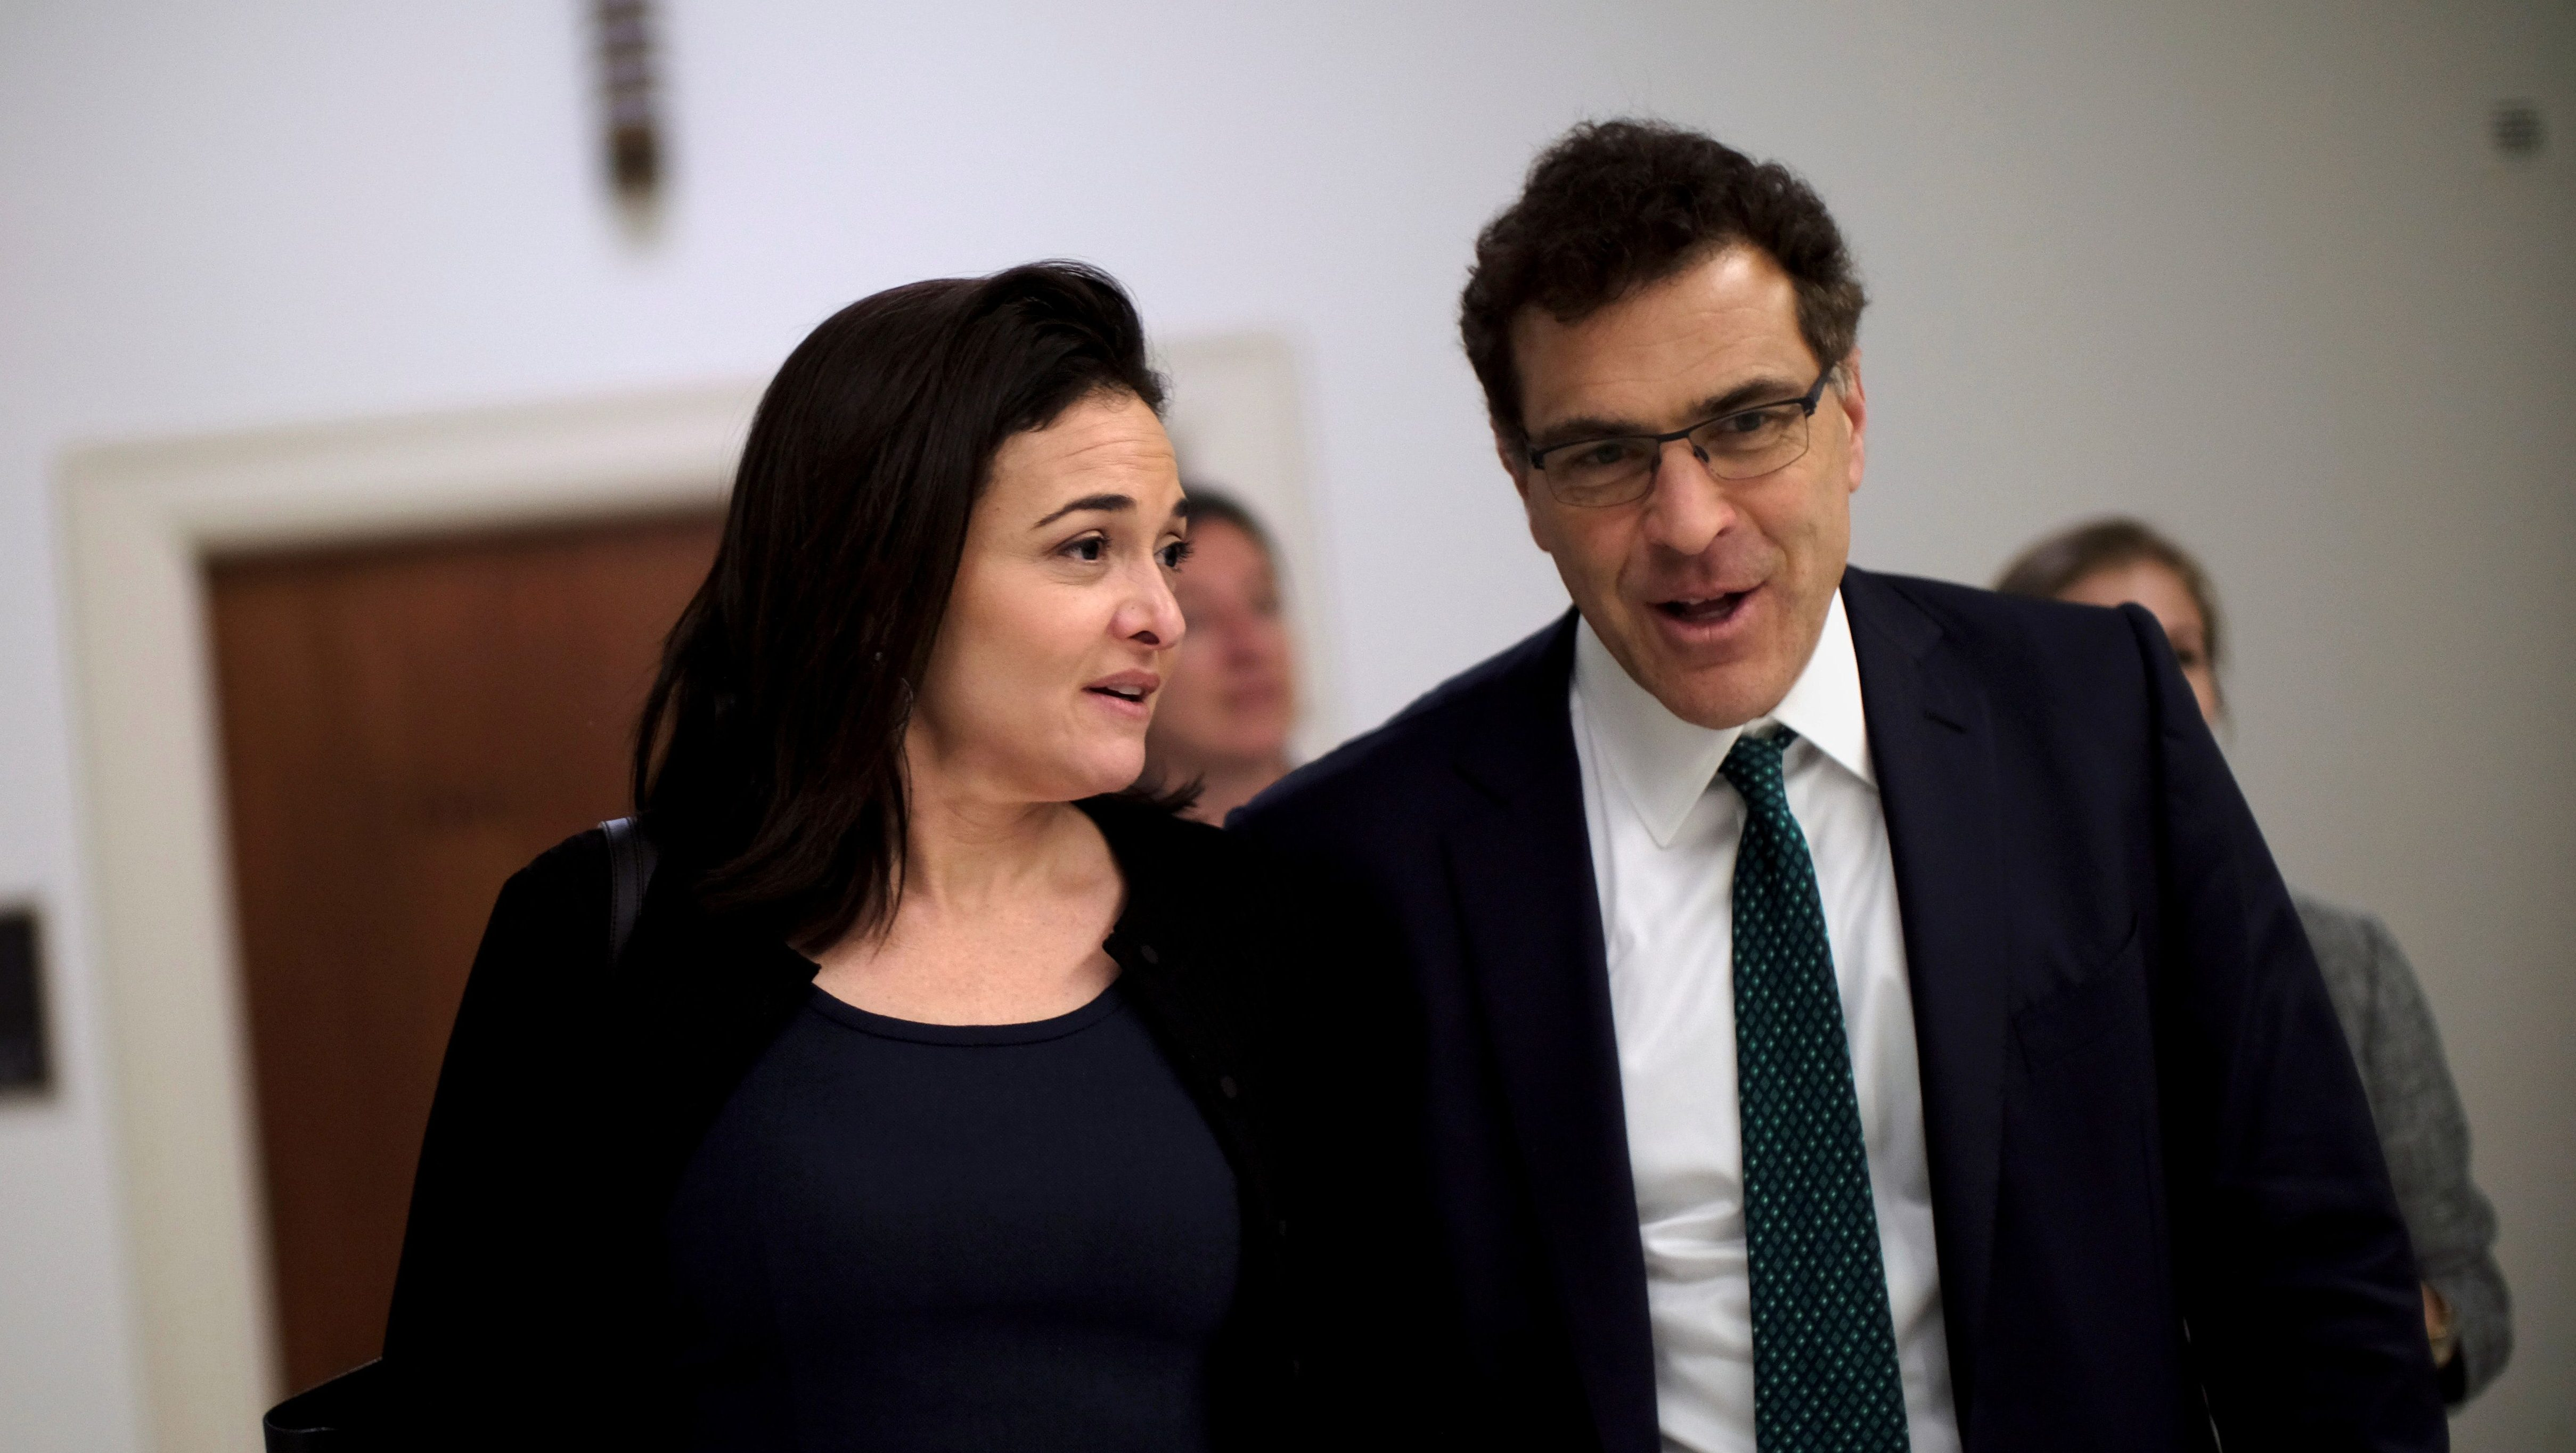 FILE PHOTO: Facebook Chief Operating Officer Sheryl Sandberg and Vice President of global communications and public policy Elliot Schrage leave after a meeting on Capitol Hill in Washington, DC, U.S., October 12, 2017.  REUTERS/James Lawler Duggan/File Photo - RC1C39B45C00